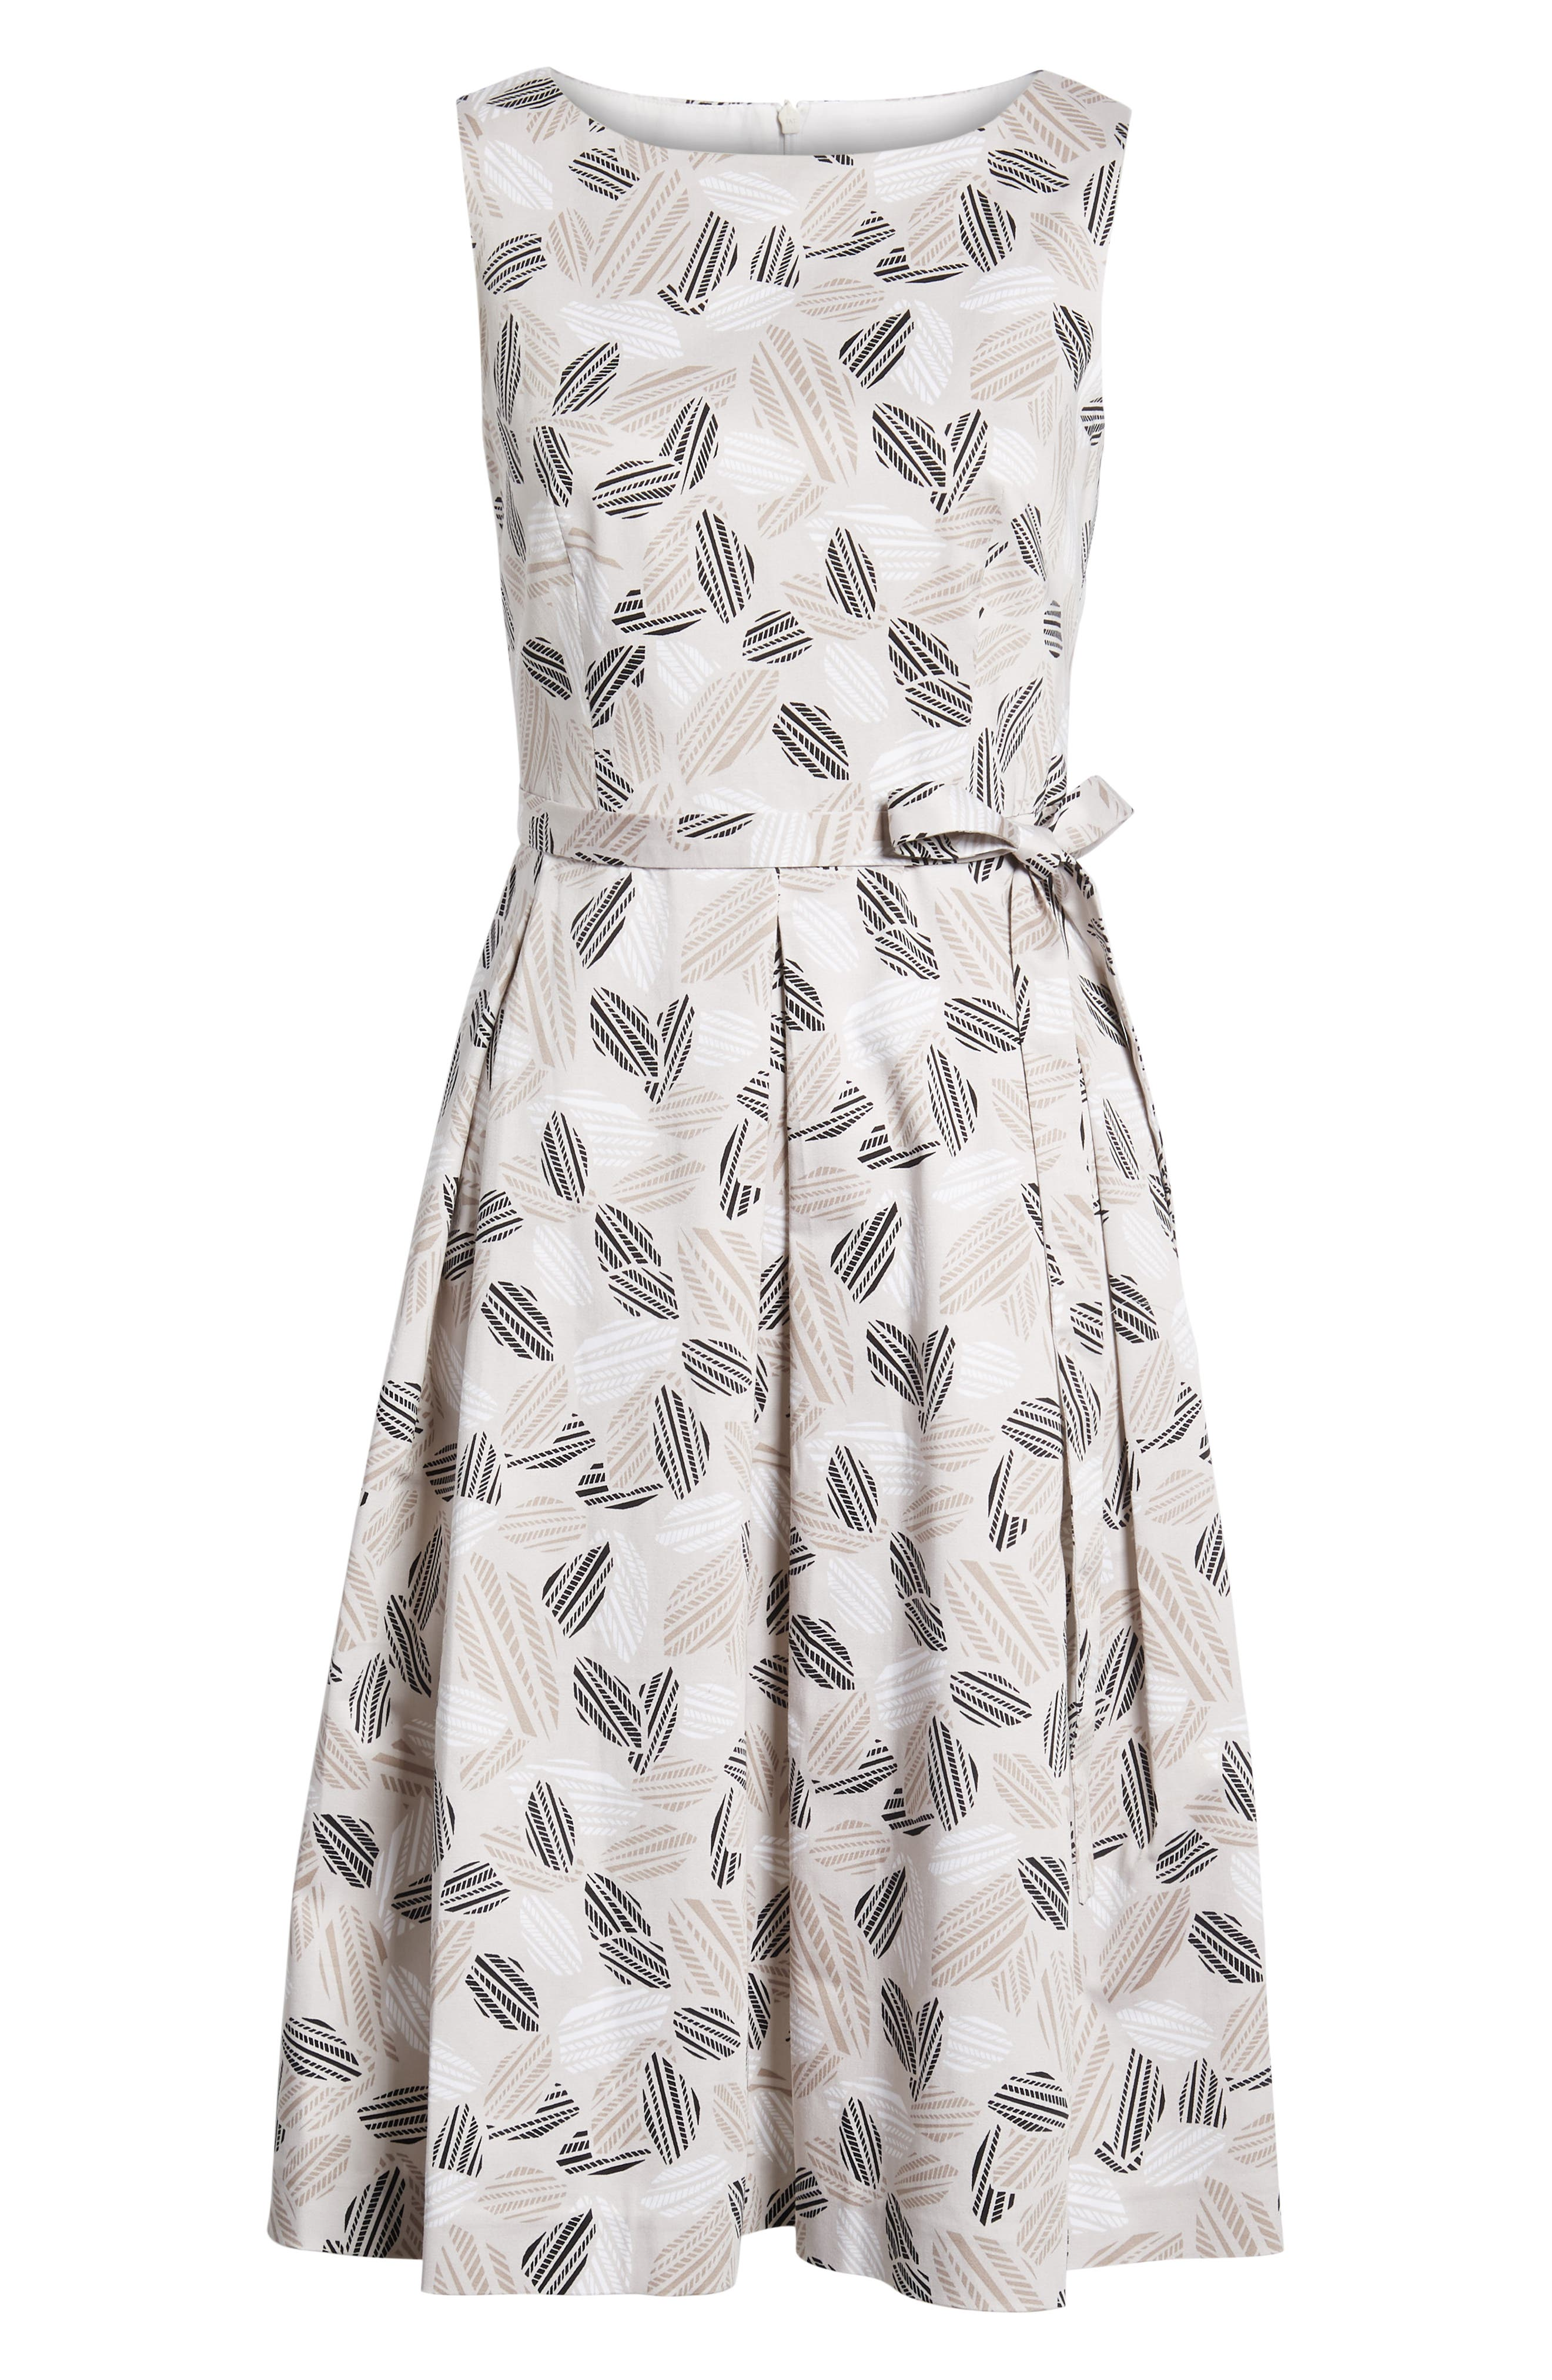 Leaf Print Fit And Flare Dress,                             Alternate thumbnail 7, color,                             250